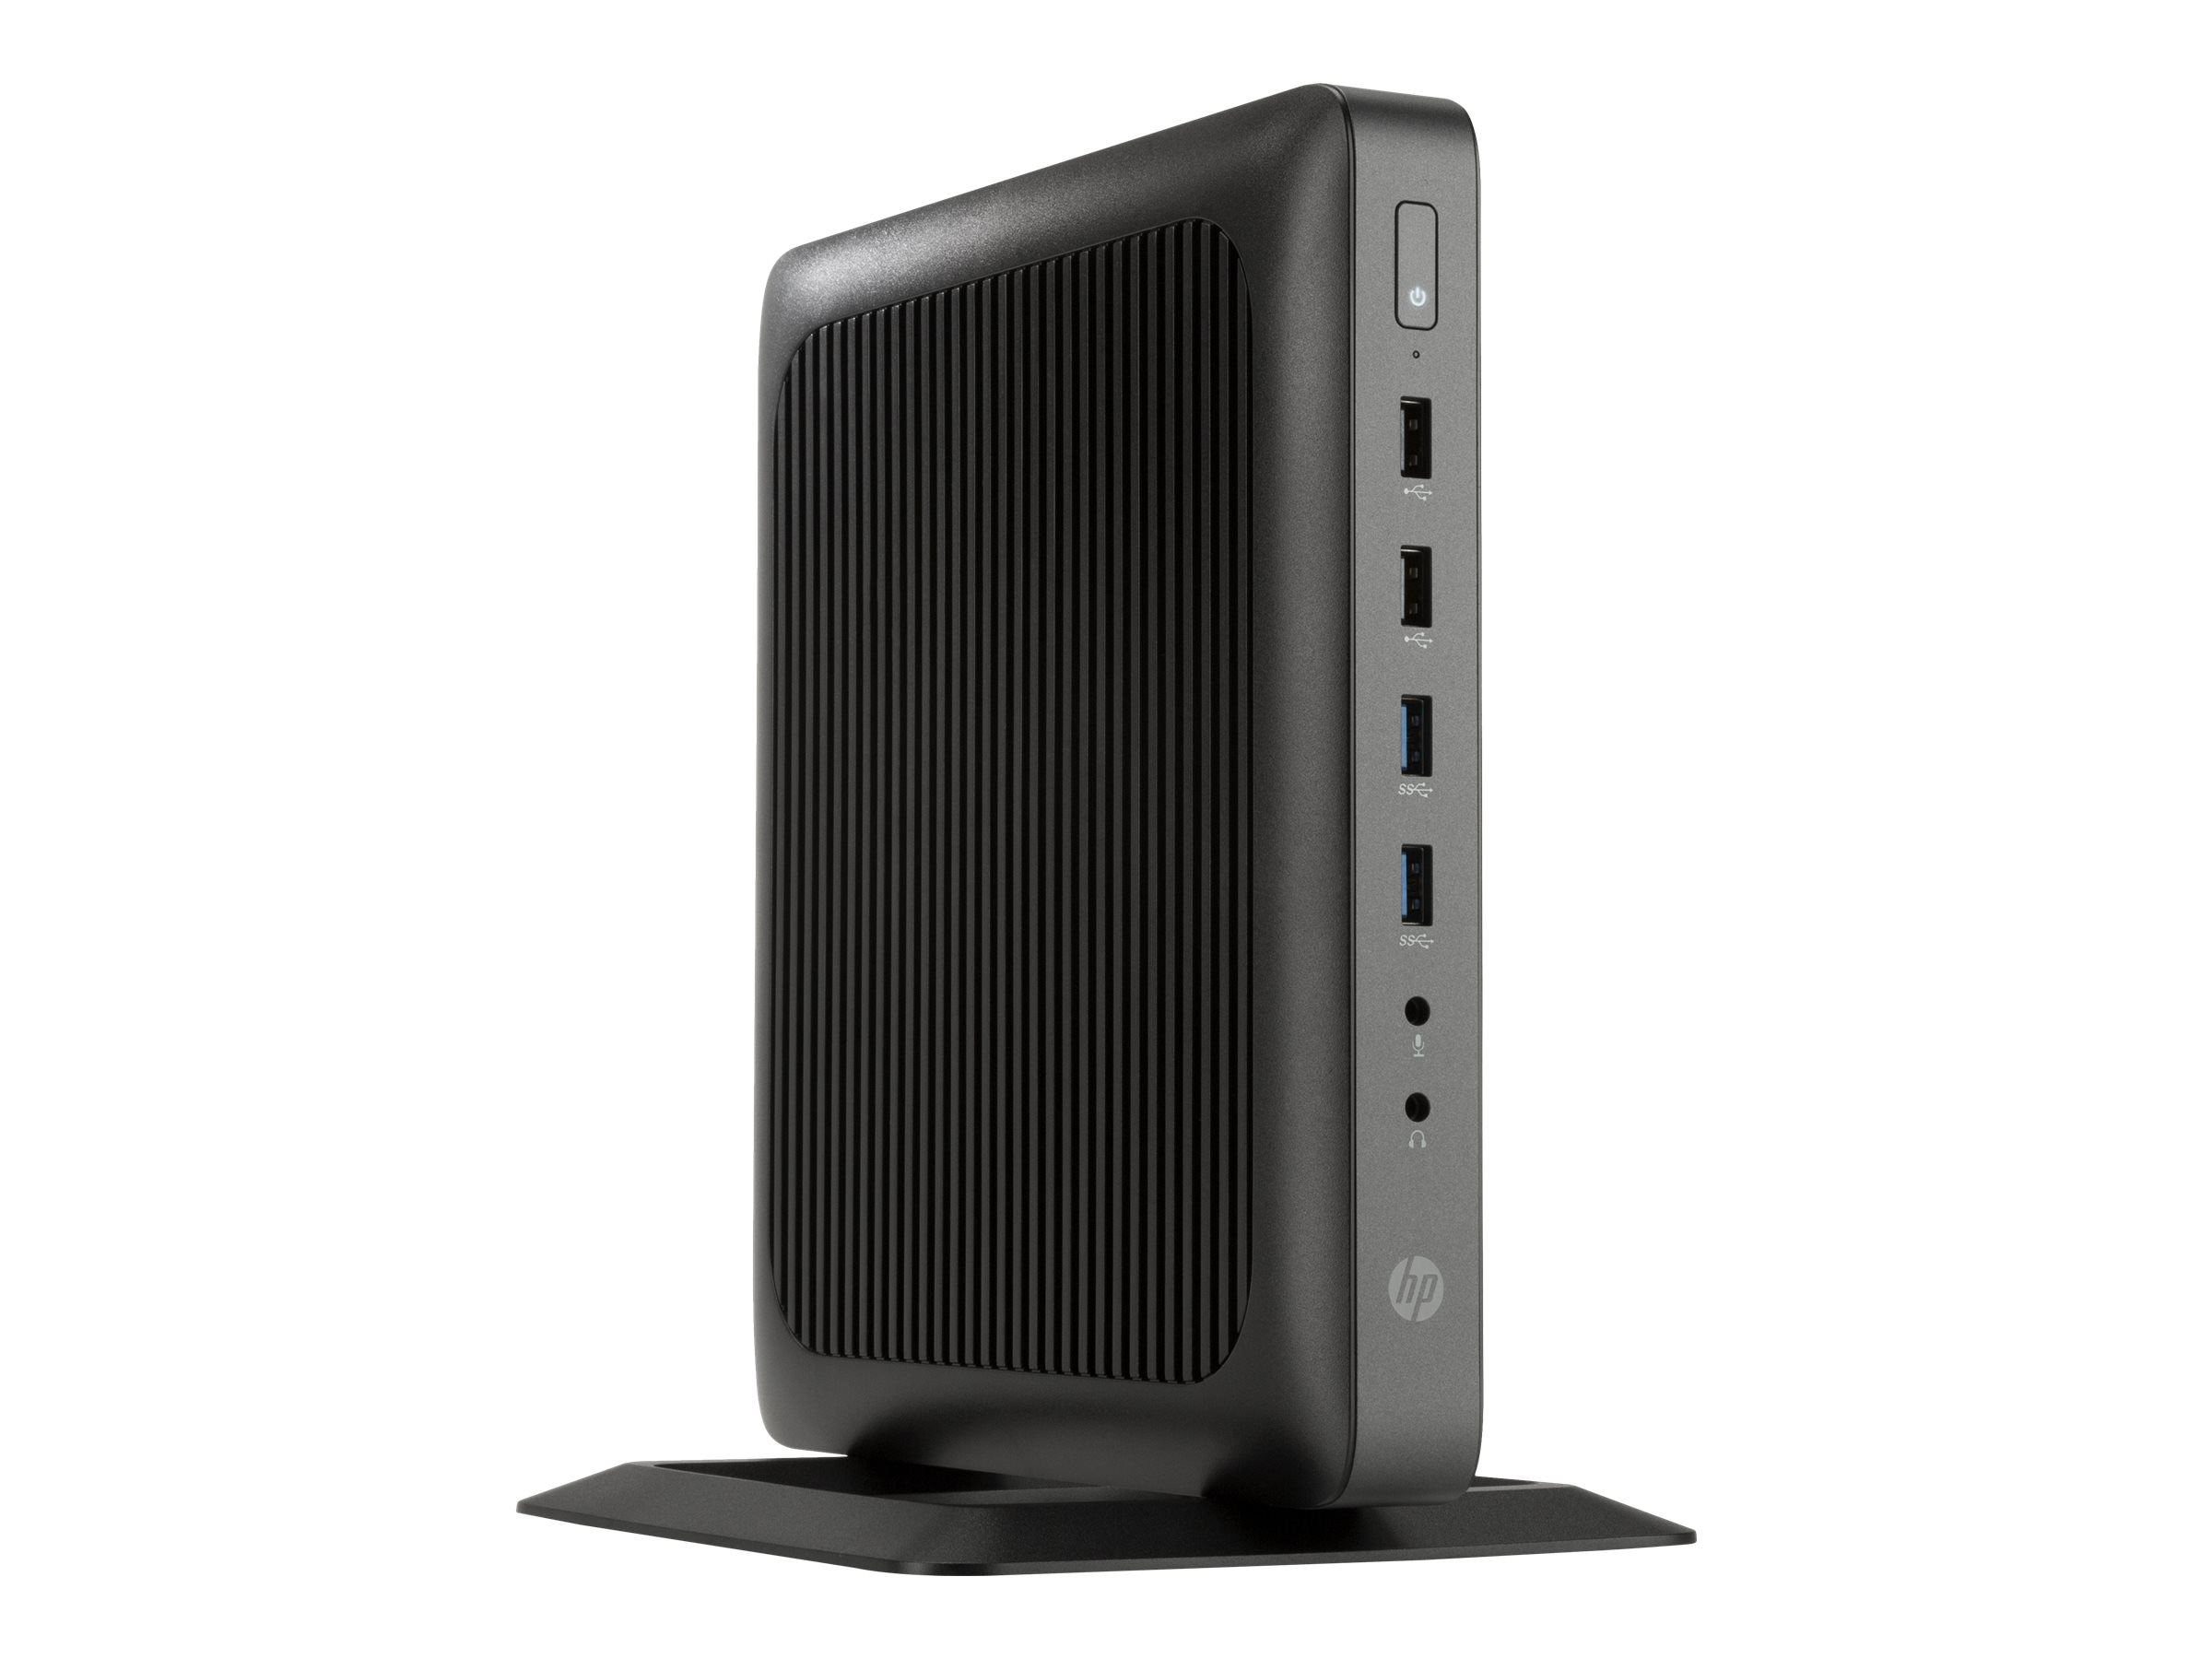 HP t620 Flexible Thin Client AMD QC GX-415GA 1.5 GHz 8GB 32GB Flash HD8330E ac BT W10 IoT, V2V56UA#ABA